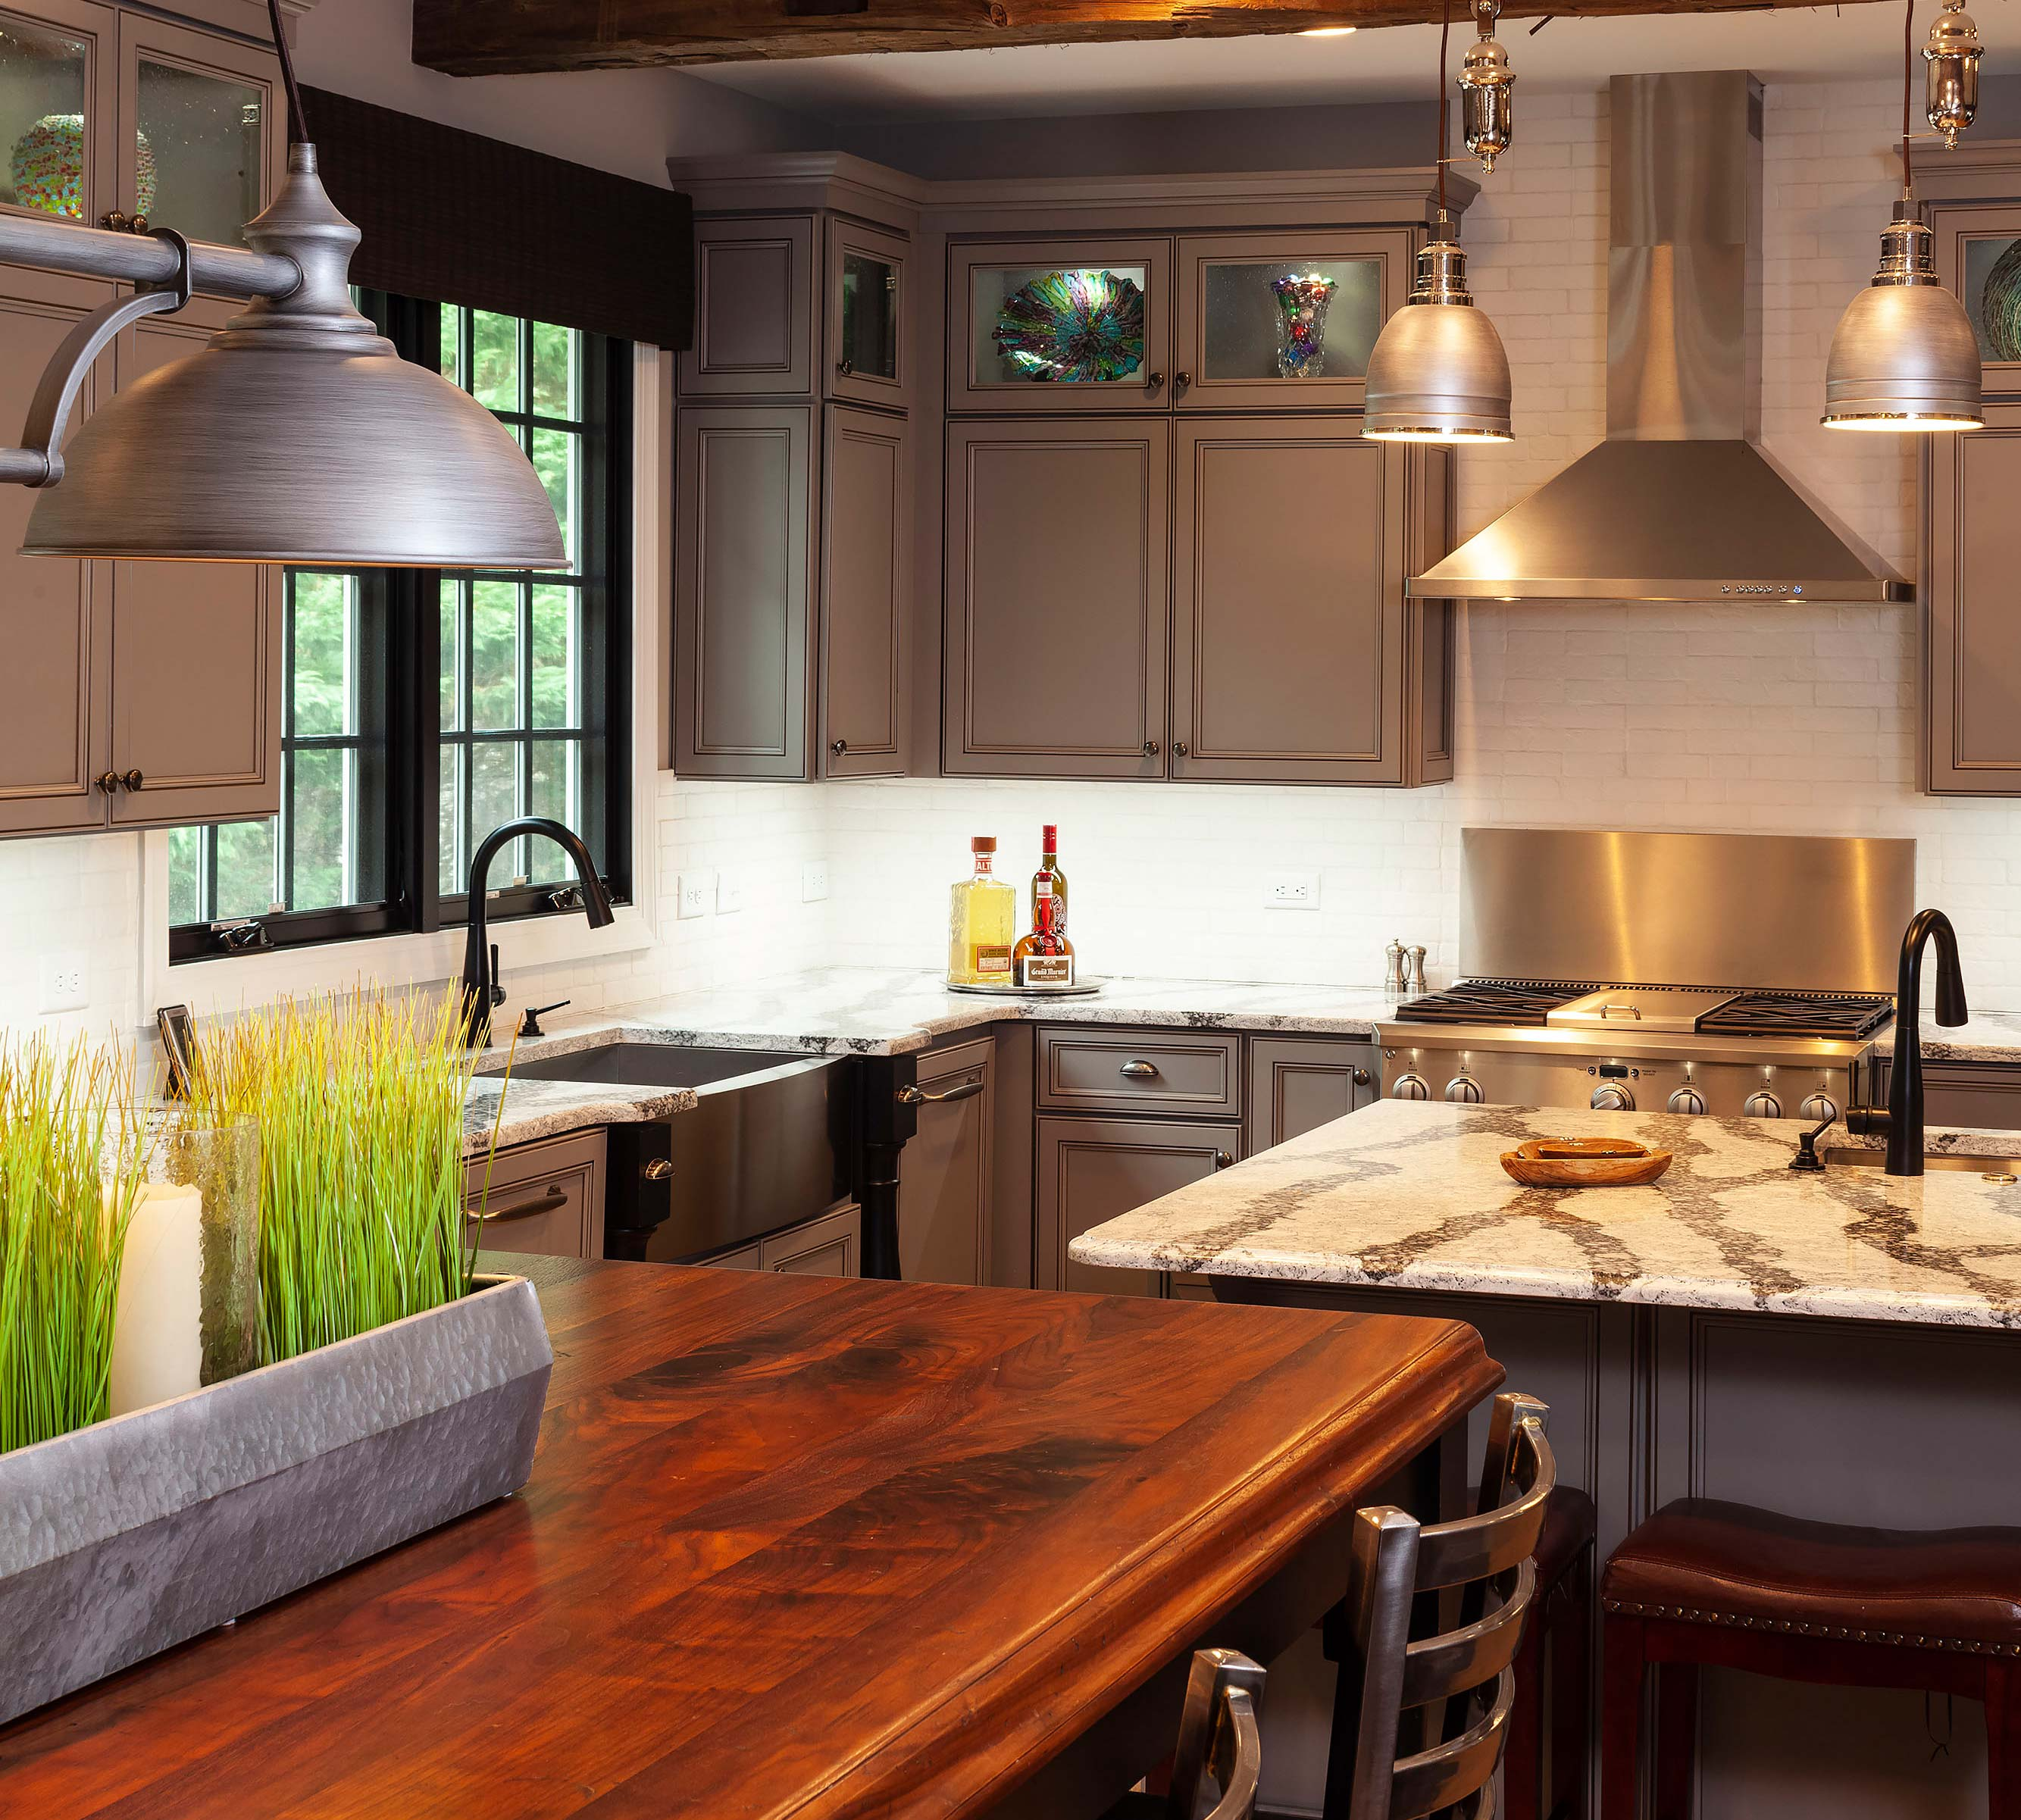 owings brothers contracting | home remodeling in maryland